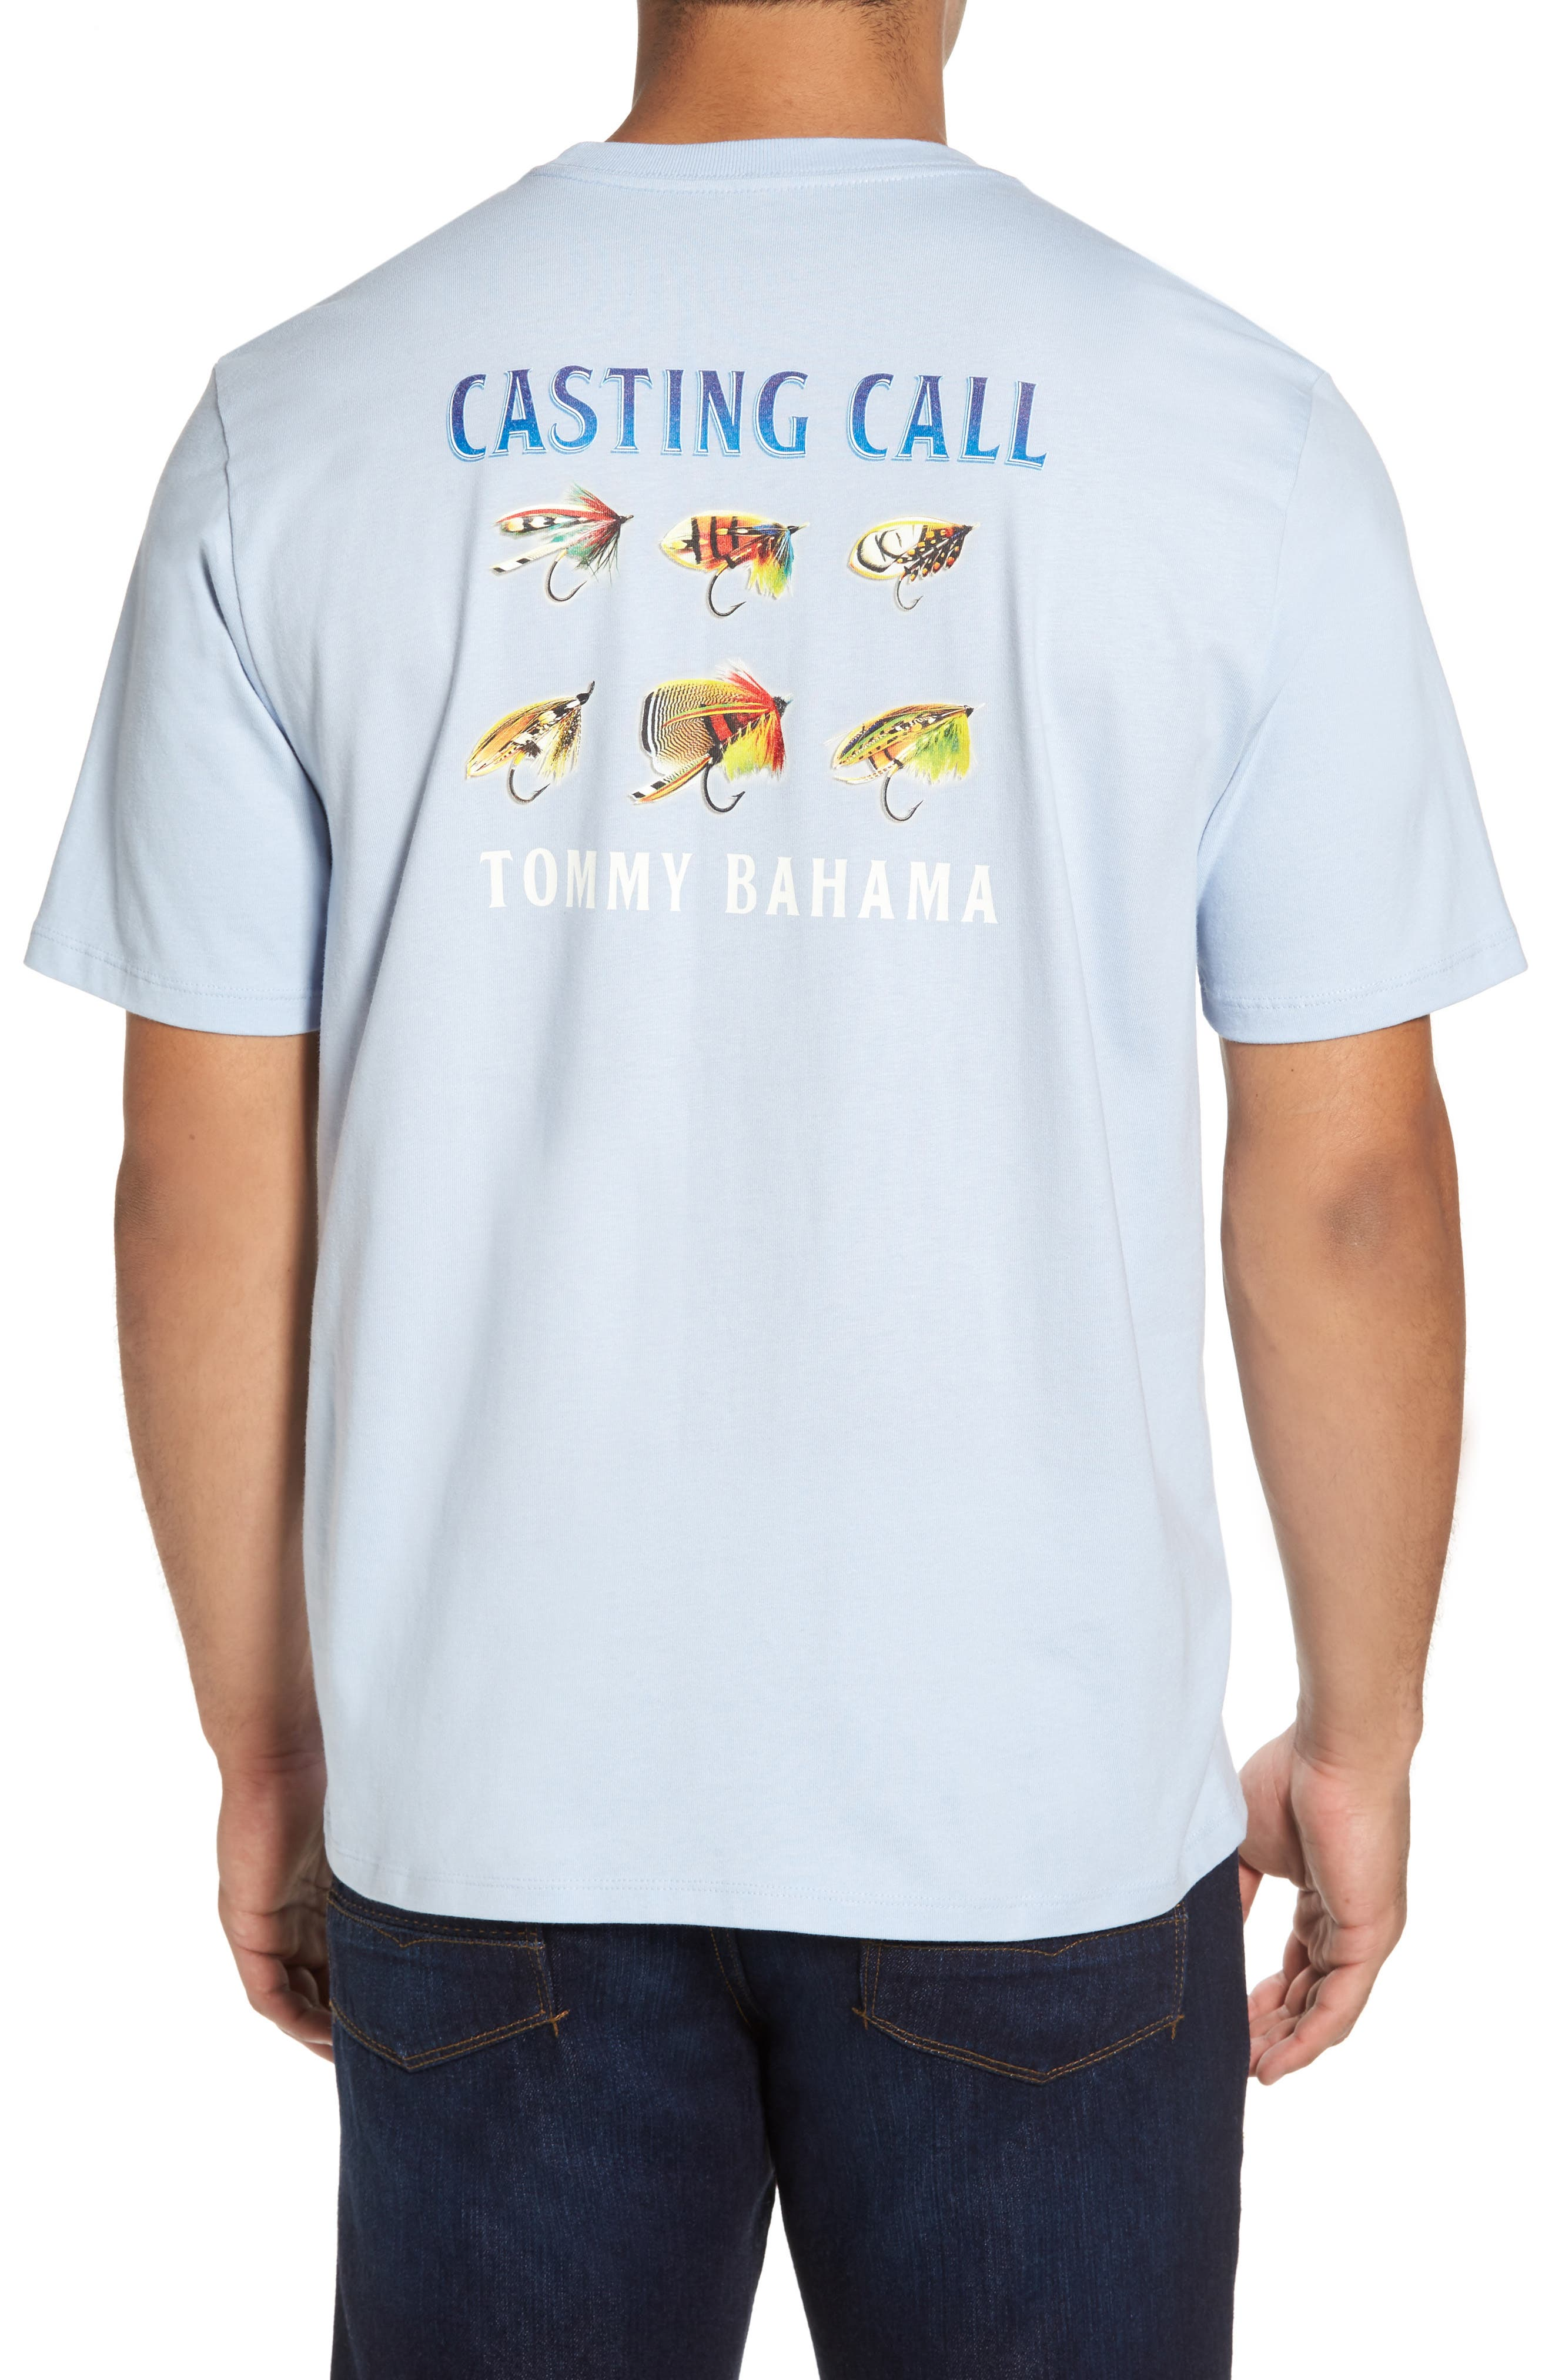 Alternate Image 2  - Tommy Bahama Casting Call Standard Fit T-Shirt